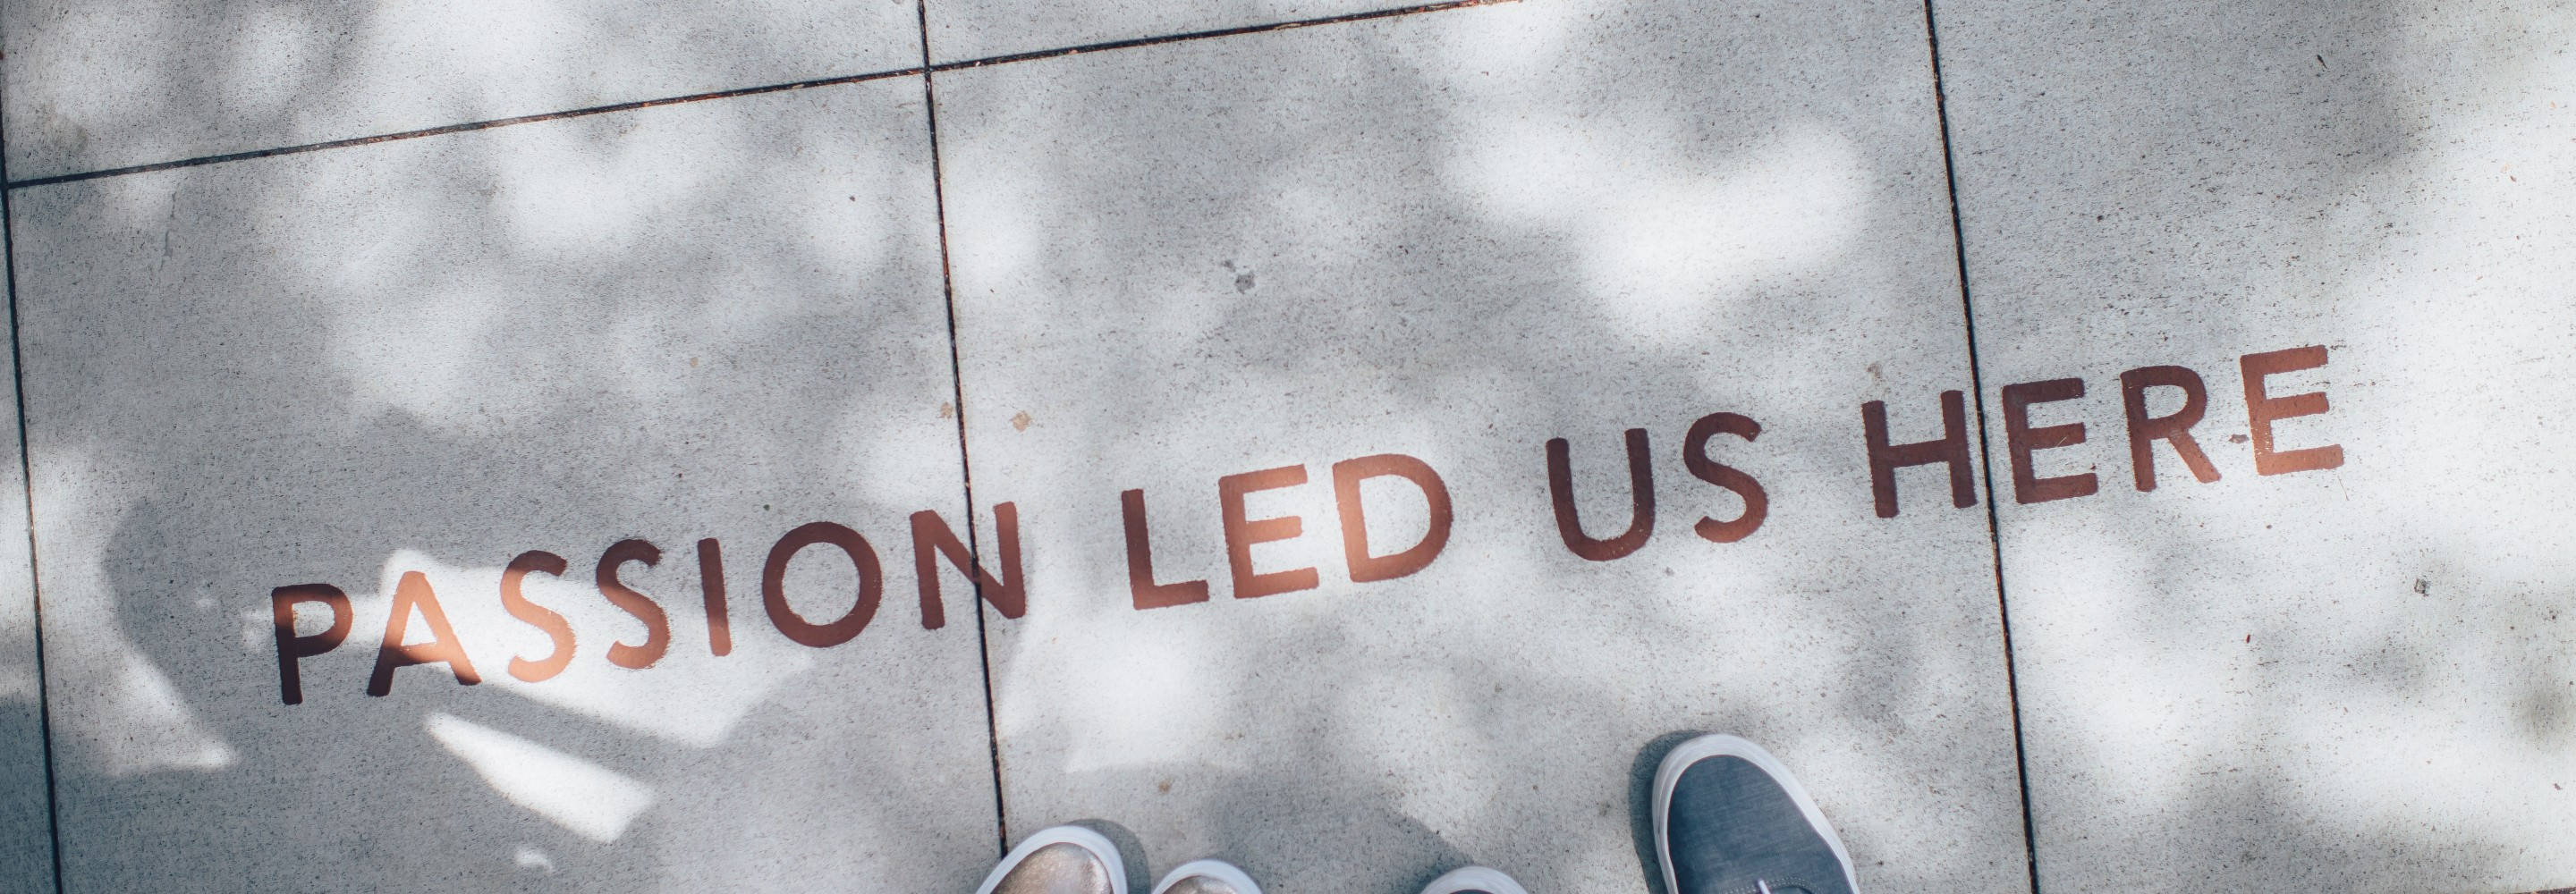 "Photo of two people standing on a sidewalk with the words ""Passion Led Us Here"" painted on; Photo from Ian Schneider on Unsplash"